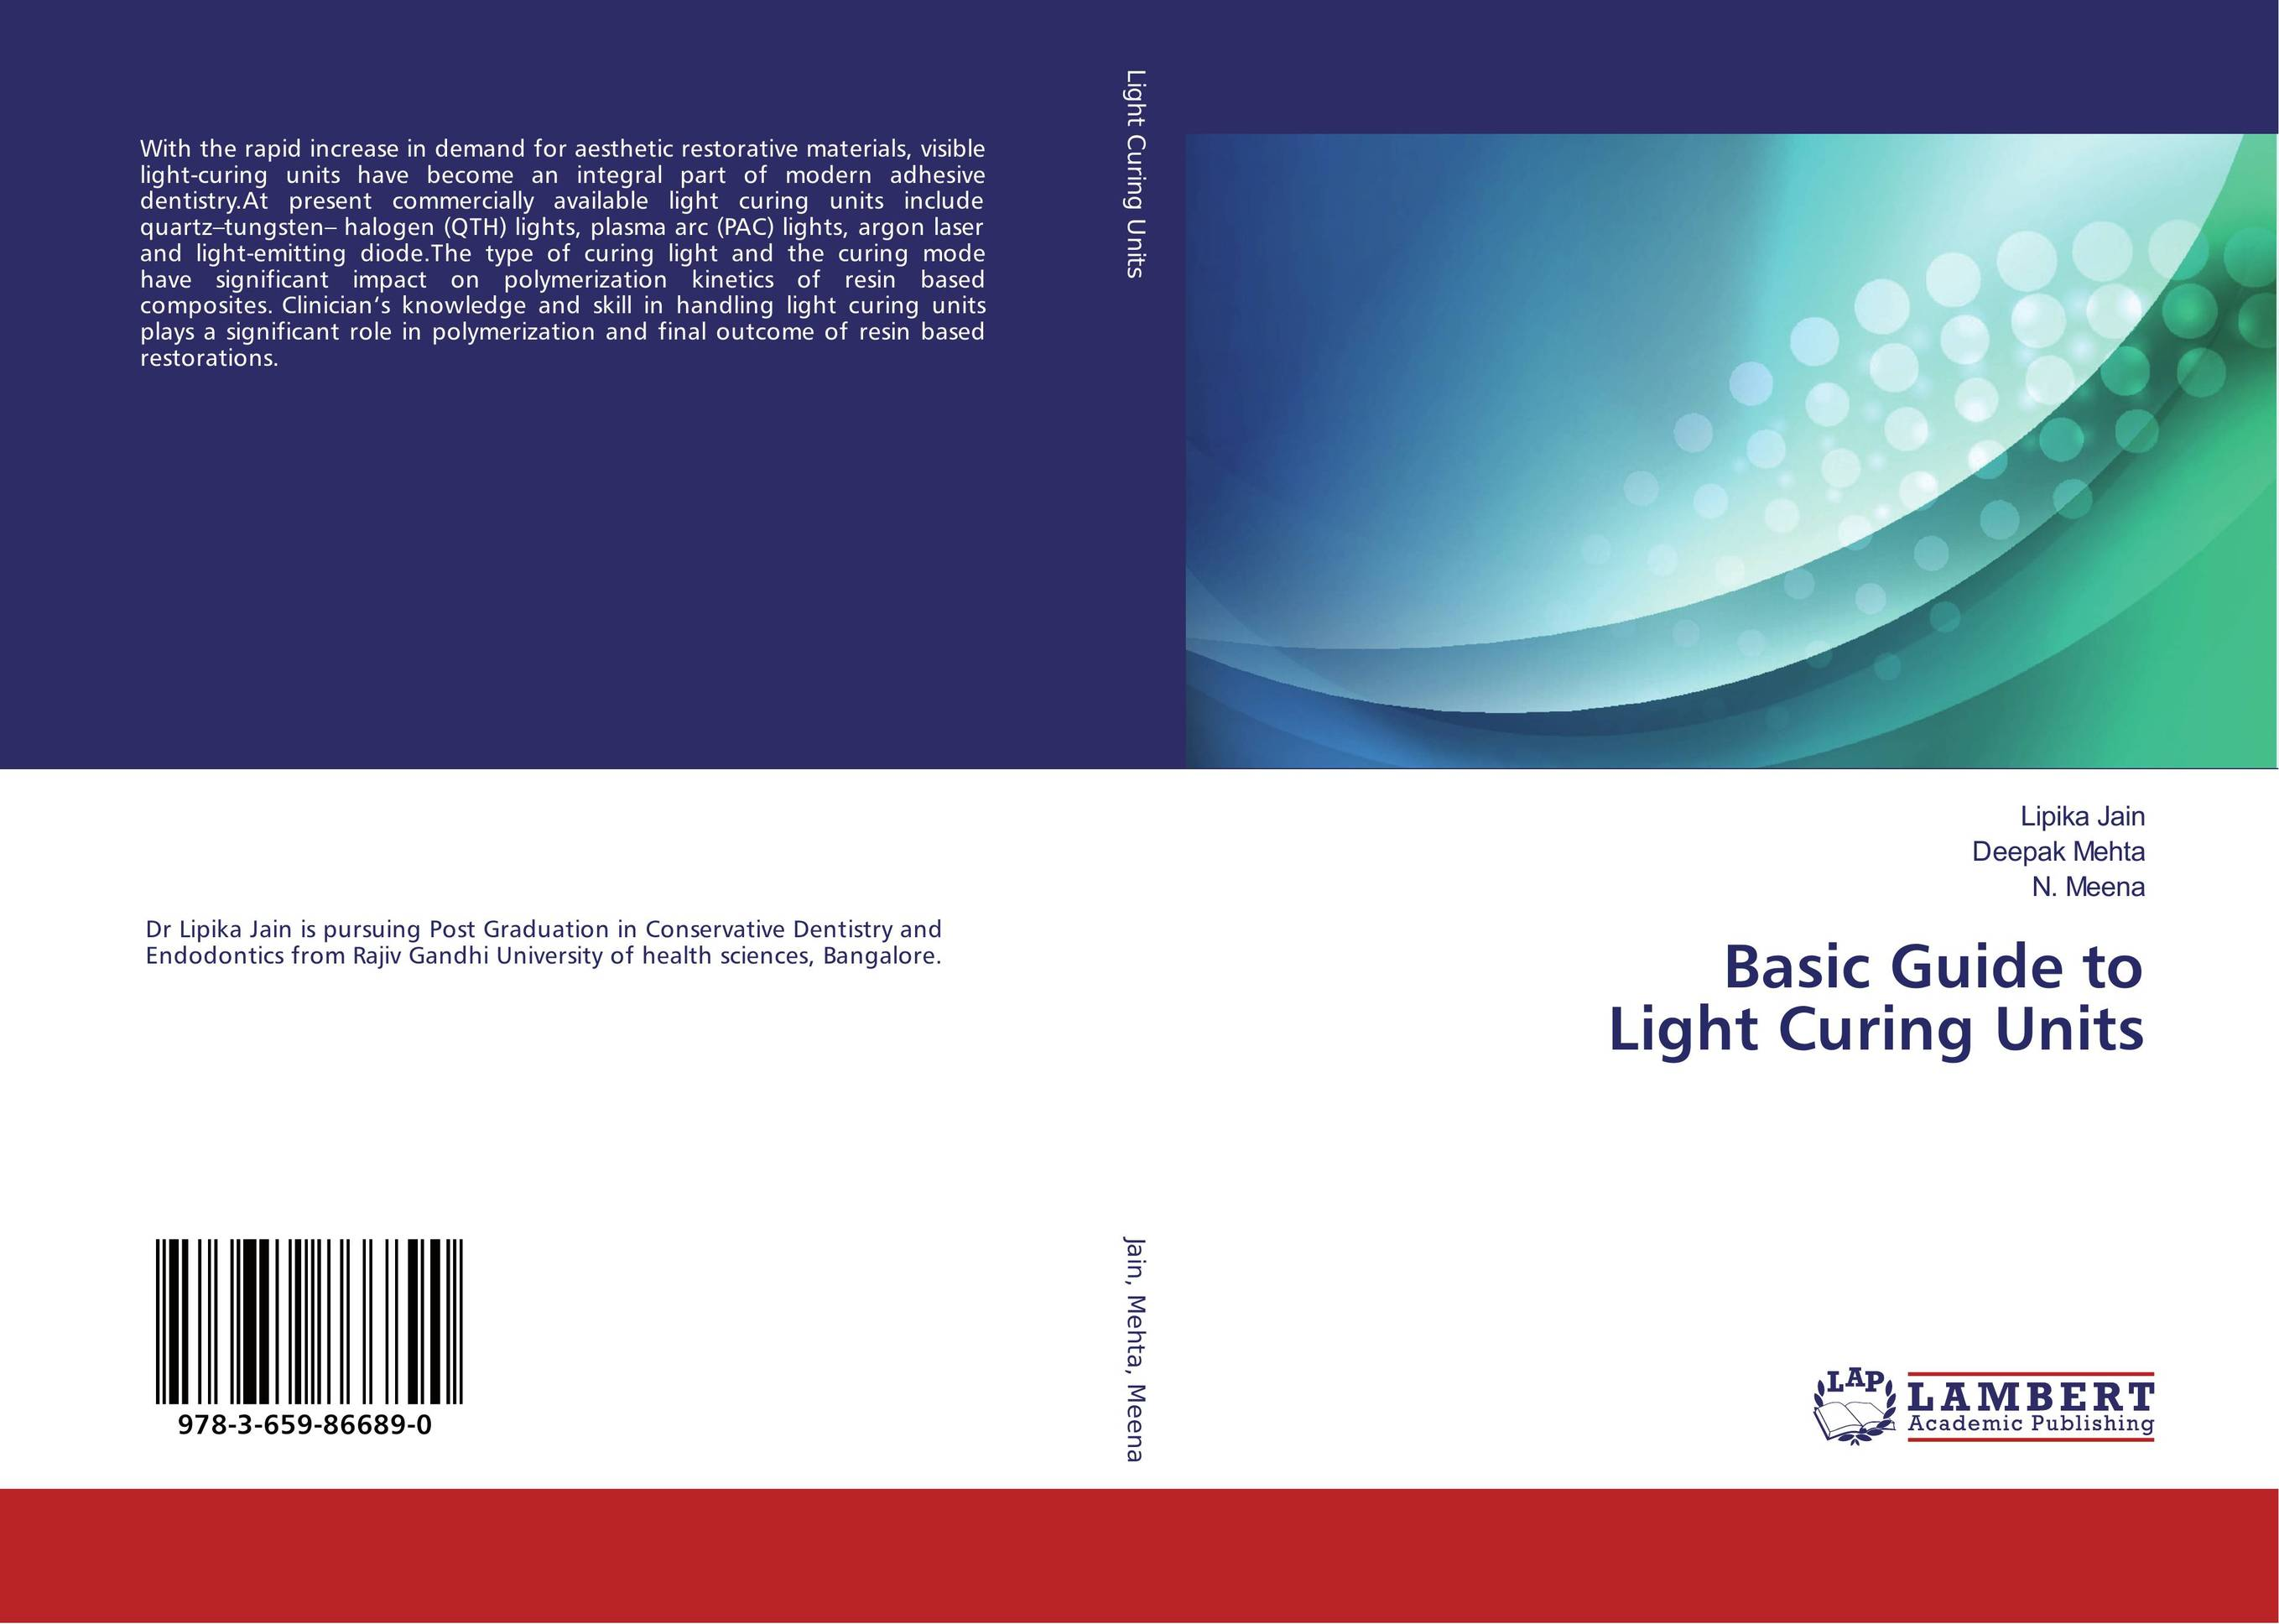 Basic Guide to Light Curing Units the auxiliary units